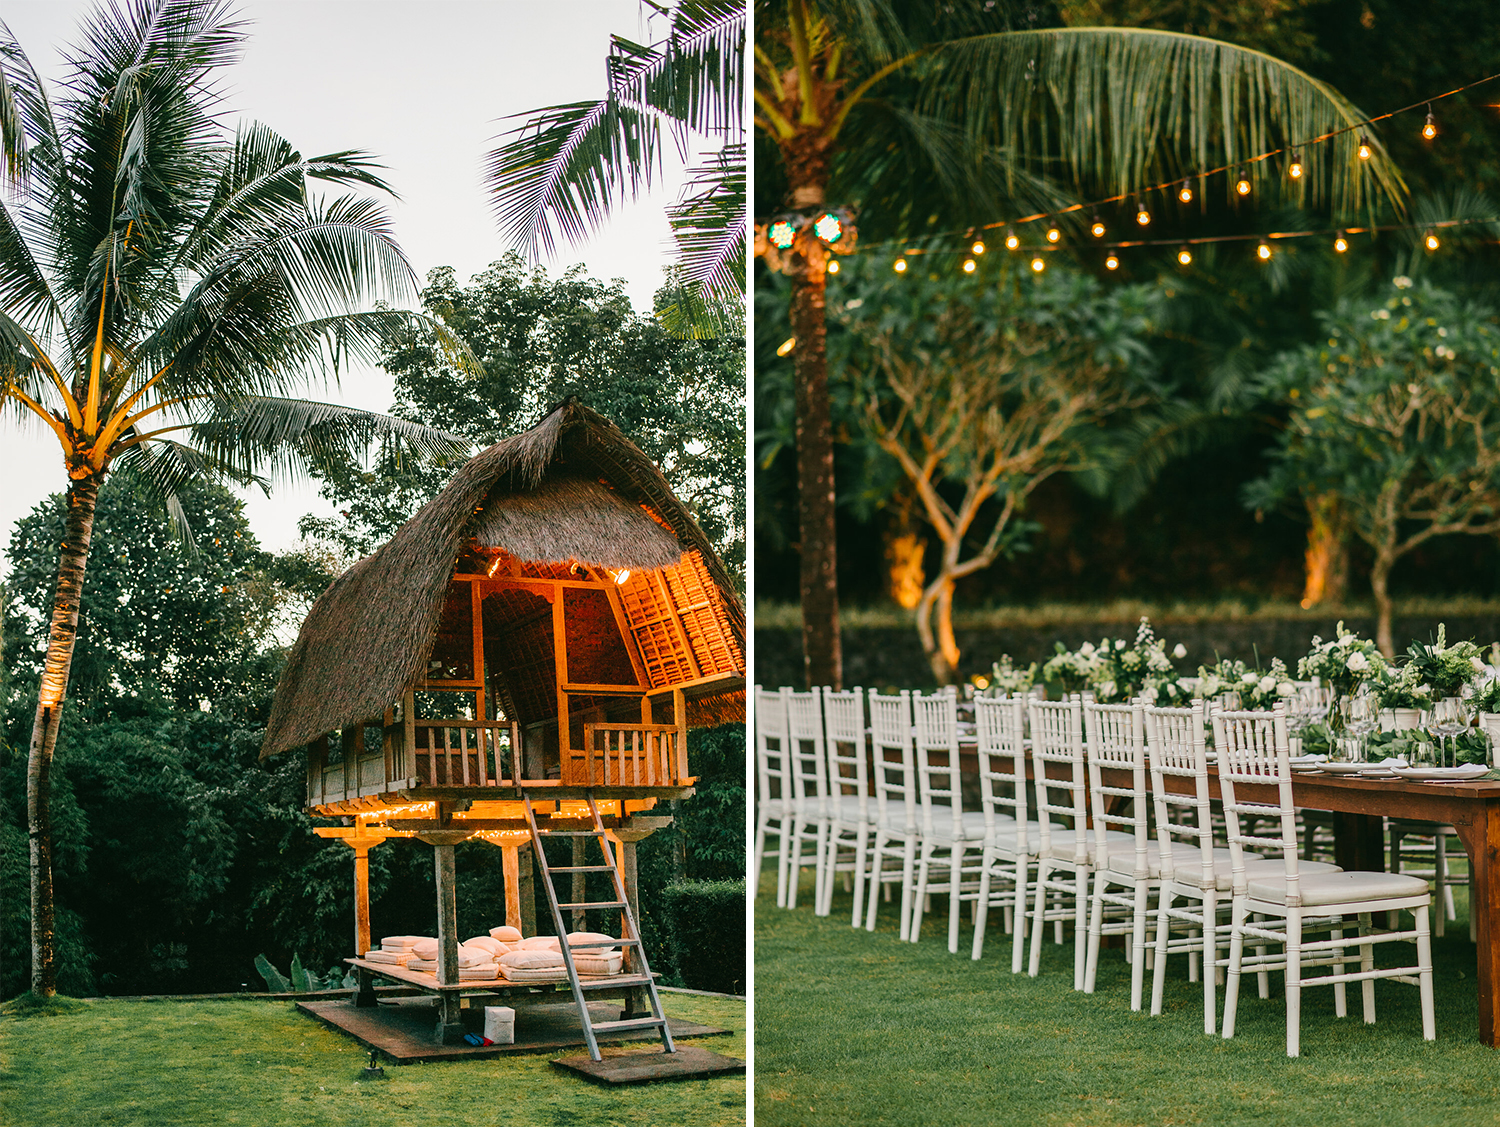 bali-wedding-destination-wedding-in-bali-bali-photographer-the-sanctuary-villa-profesional-bali-wedding-photographer-diktatphotography-clement-armine-wedding-68